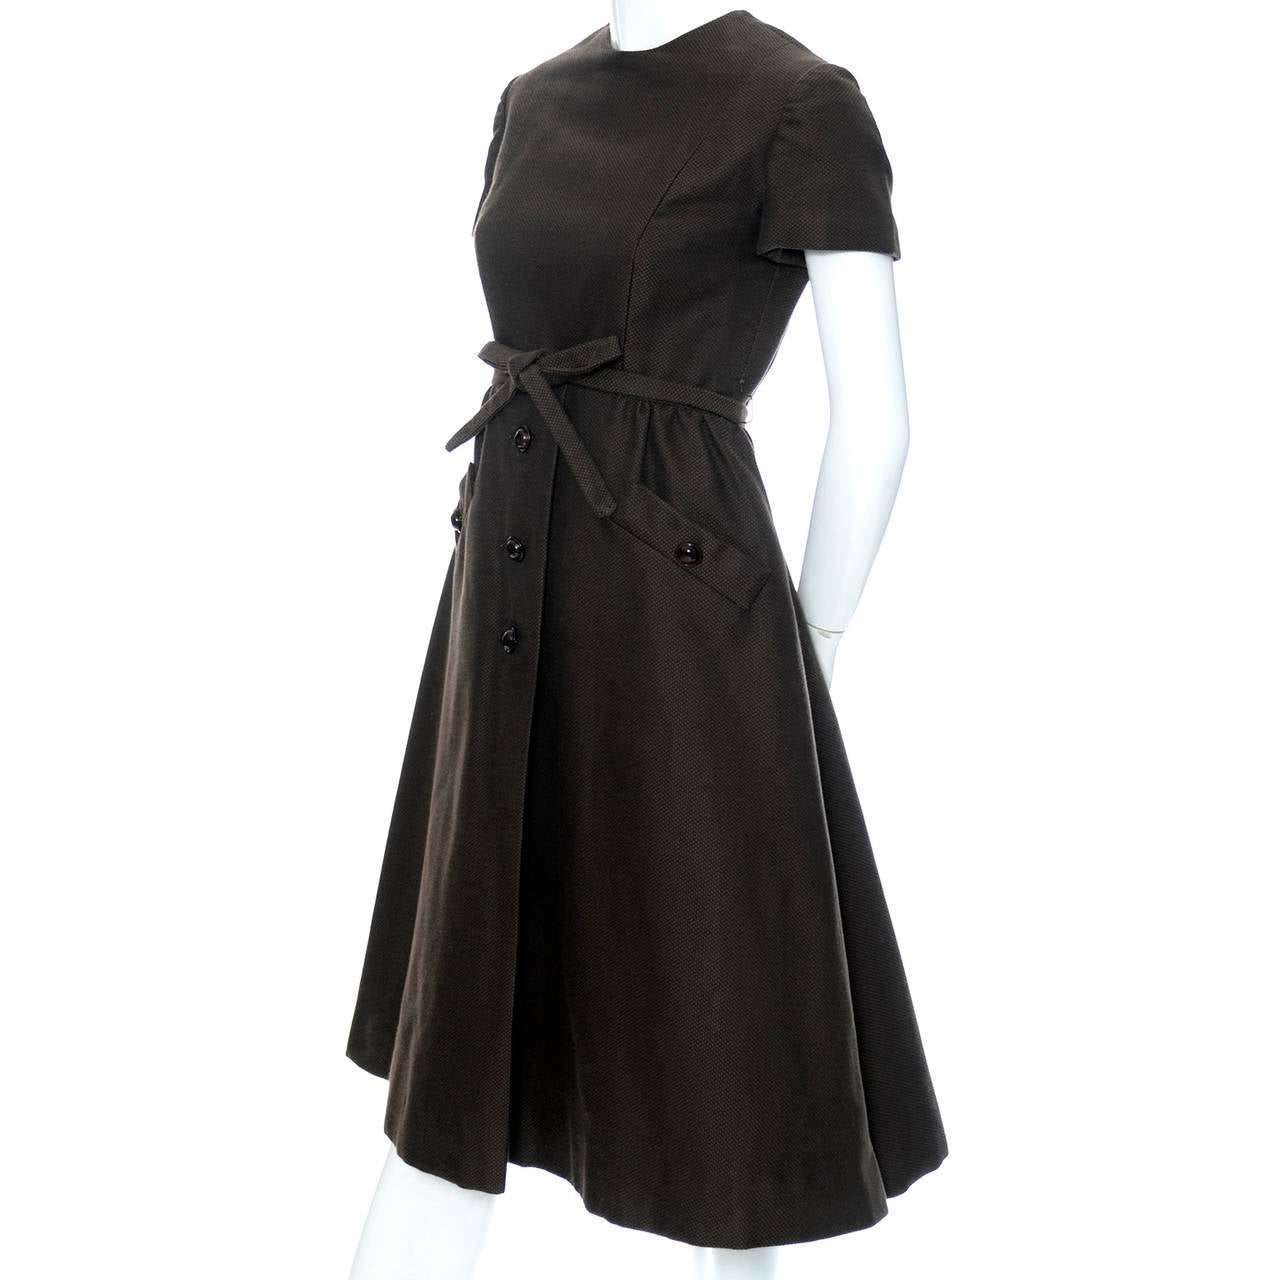 This rare vintage dress from Geoffrey Beene is from the 1960's and has decorative front buttons, a fabric belt, and great front pockets. The dress has a full skirt, a back zipper and is fully lined. I love Geoffrey Beene, his dresses were always so